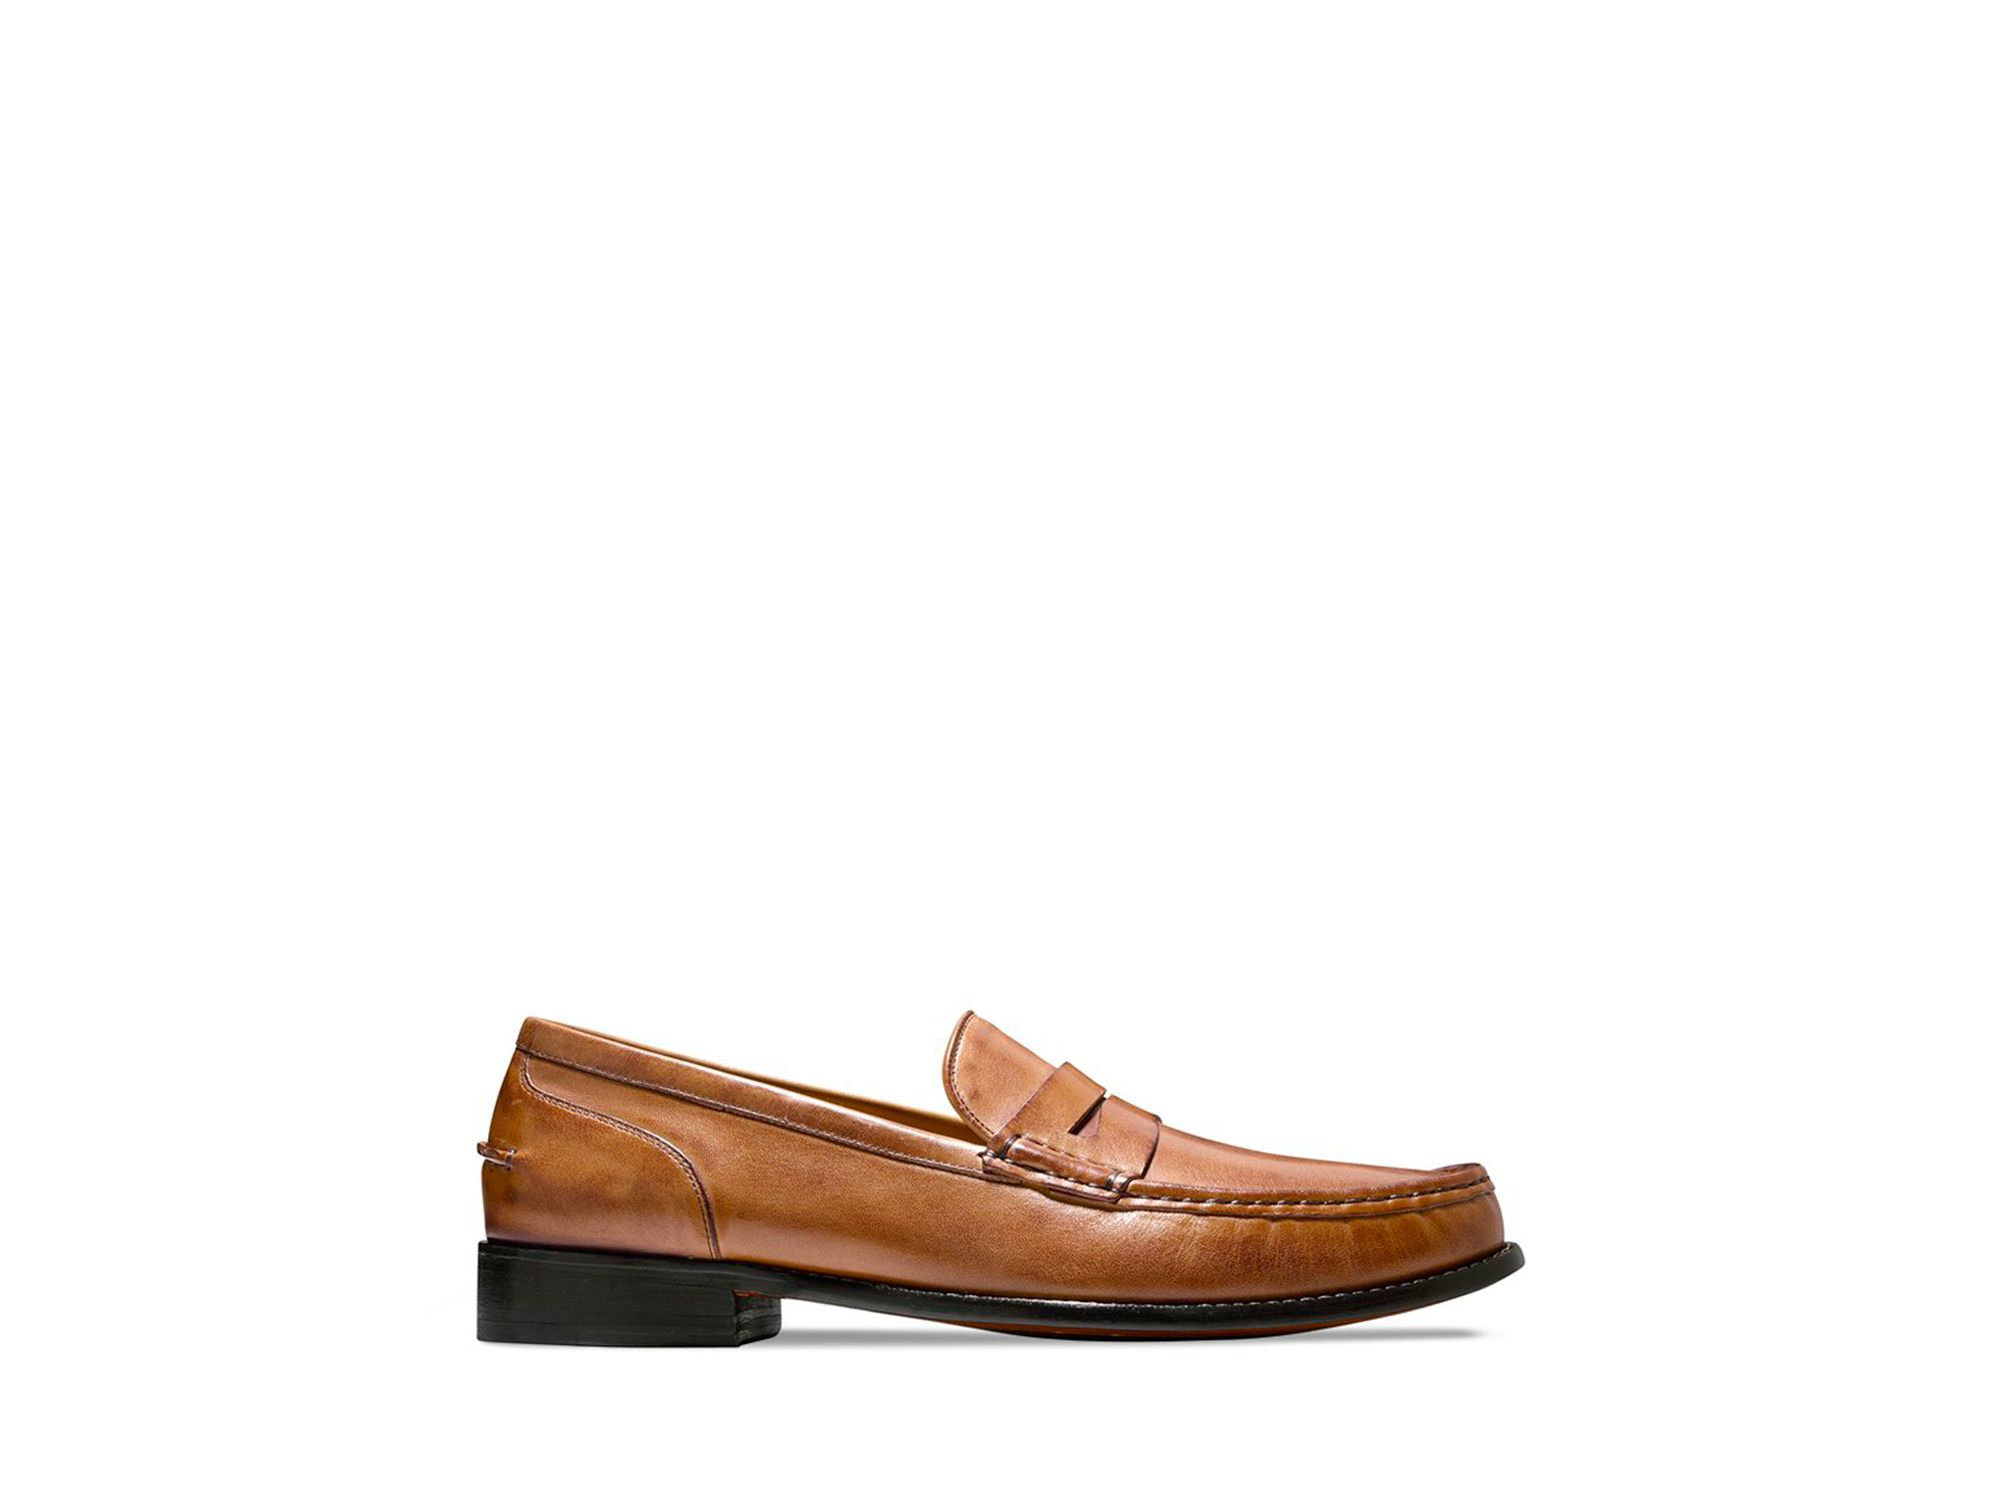 750a8c1c949 Cole Haan Britton Penny Loafers in Brown for Men - Lyst